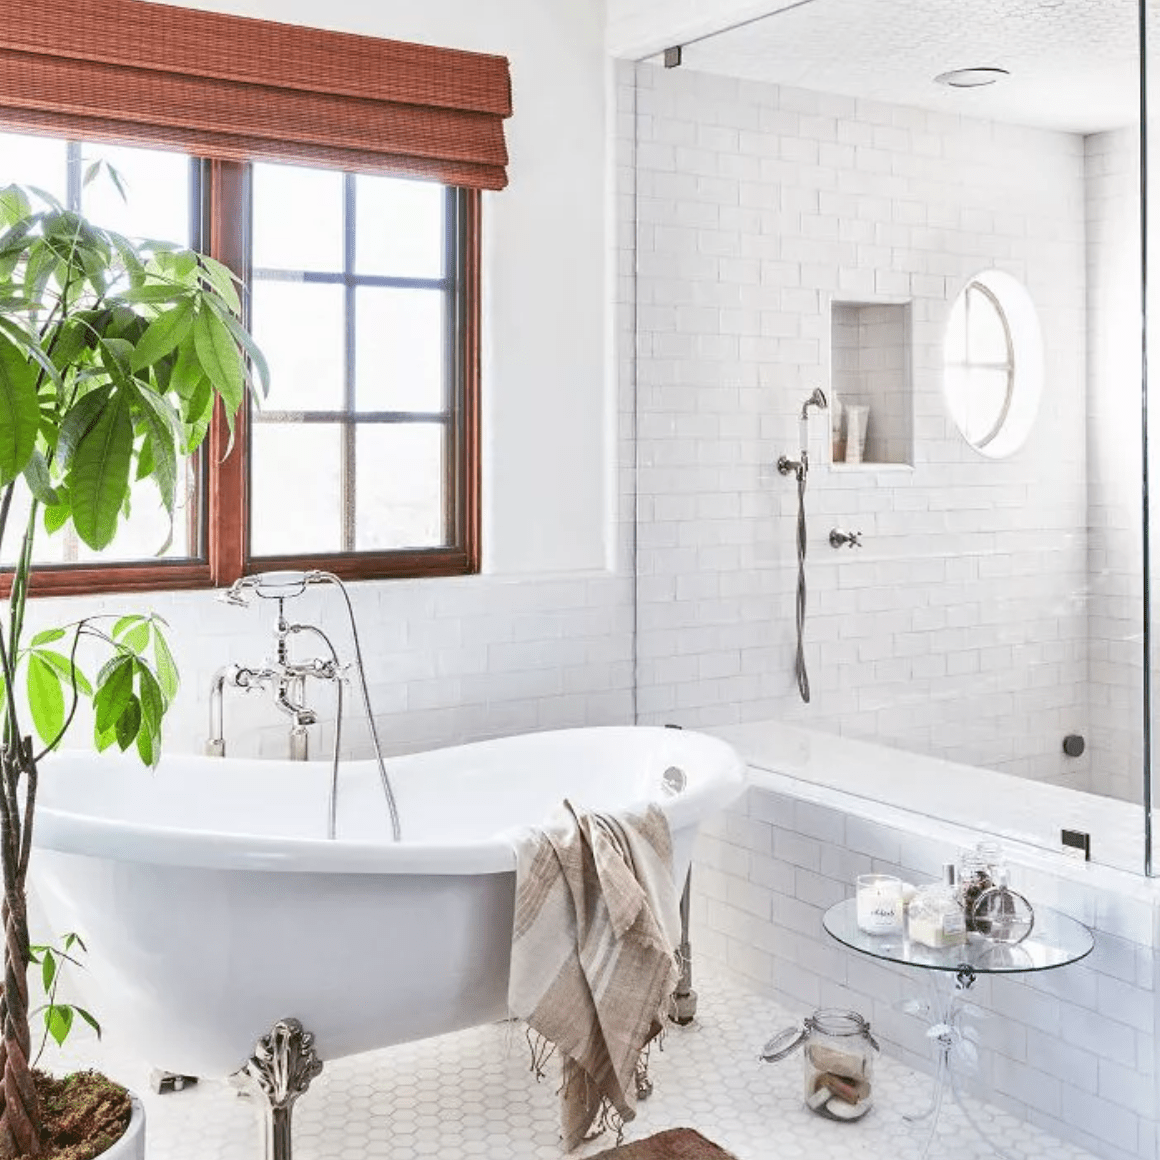 Tiled bathroom with woven window treatments and potted tree